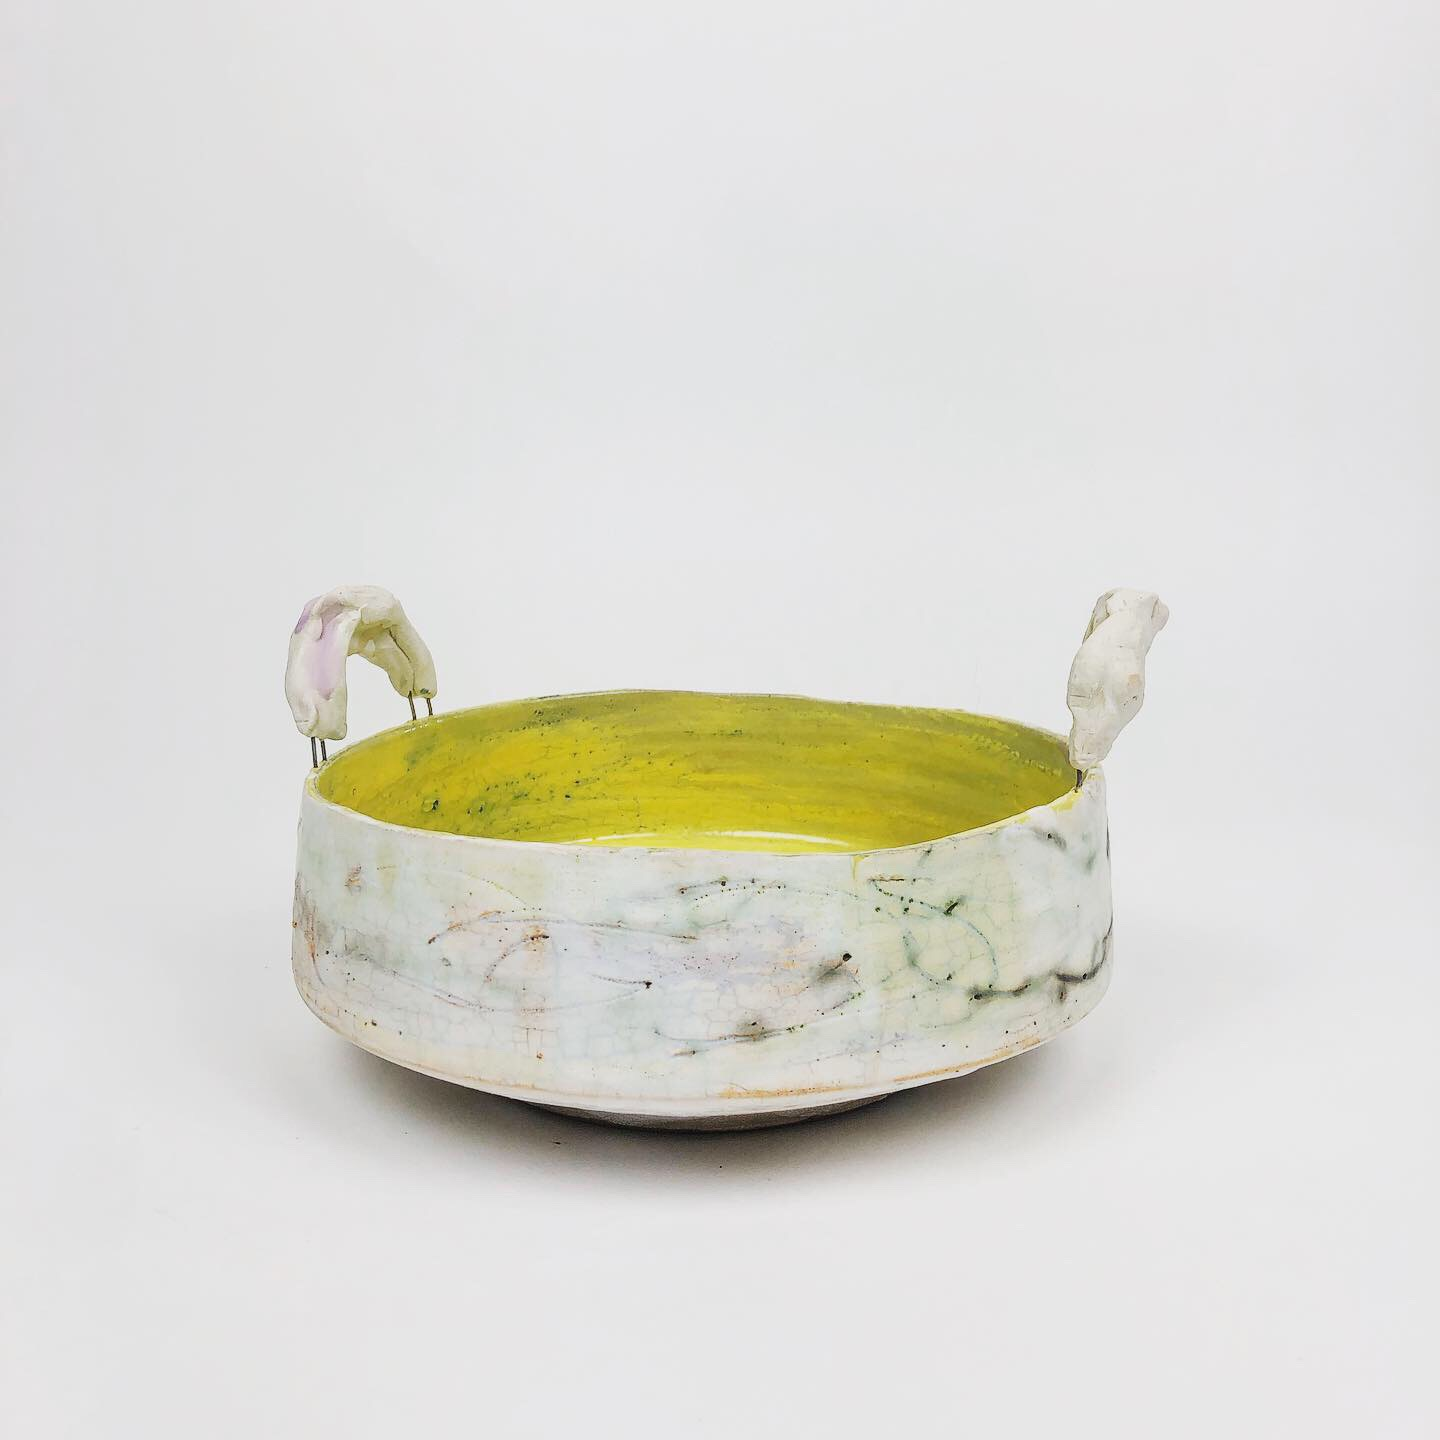 Ani Kasten Yellow Bowl With Porecelain Handles